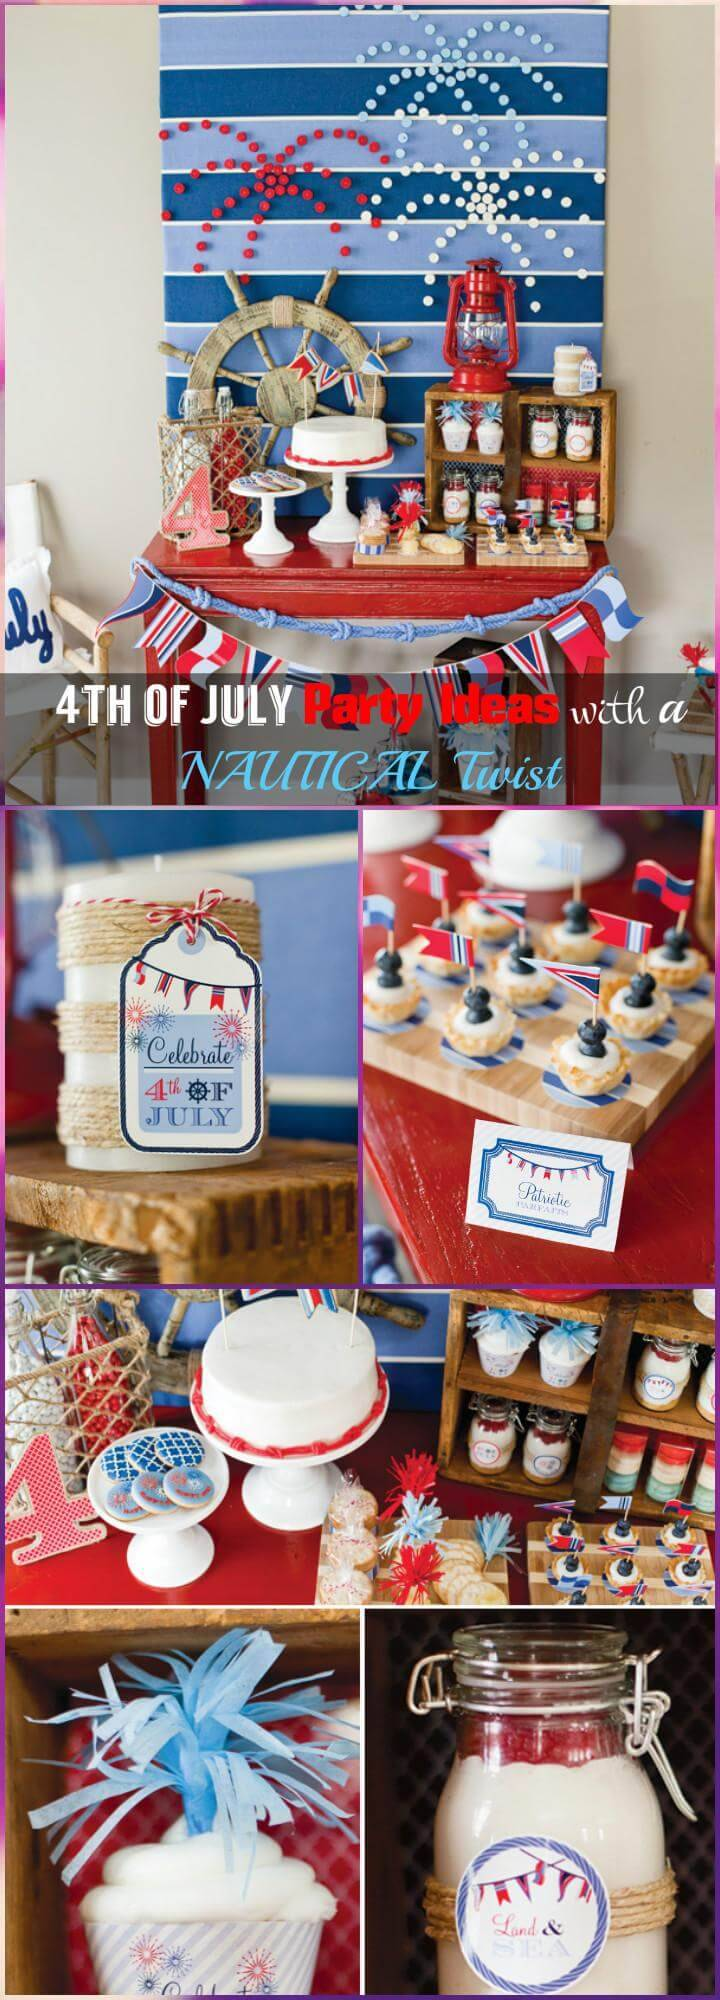 4th of July Party Ideas with a NAUTICAL Twist